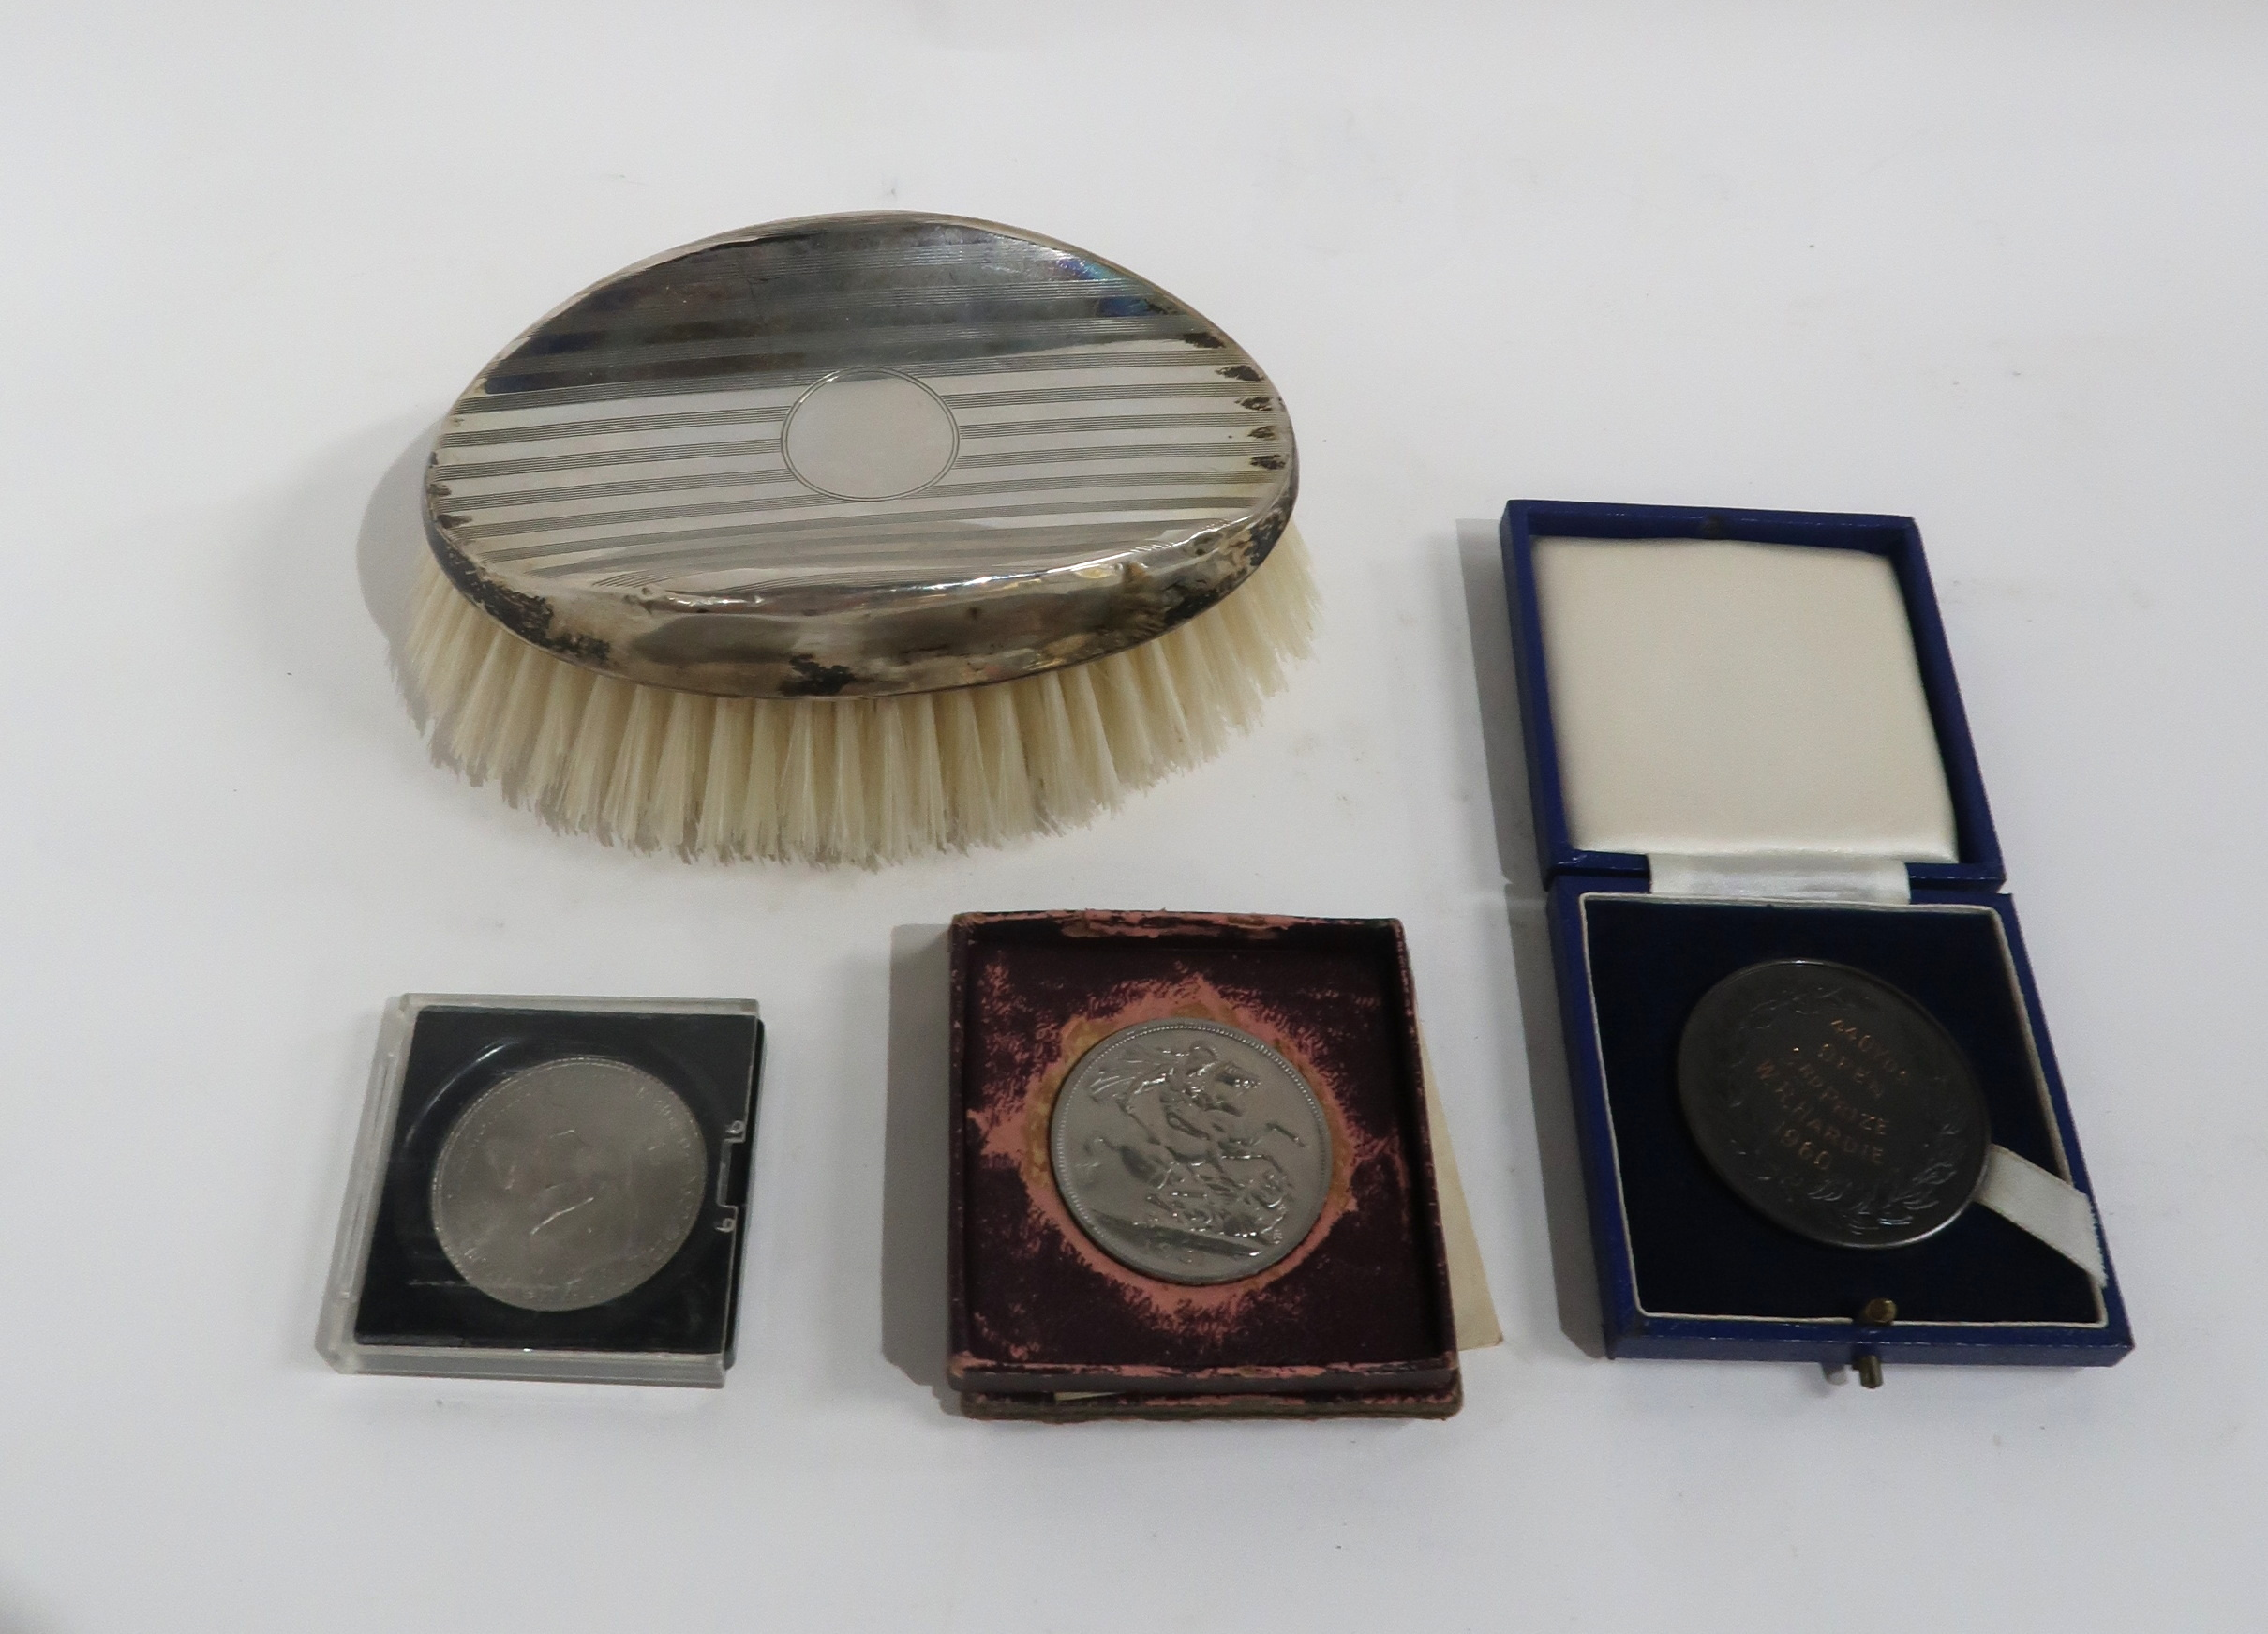 A GLASGOW ACADEMICAL CLUB BRONZE AWARD MEDAL 440 yds open 3rd prize, W.R. Hardie, 1950 with a silver